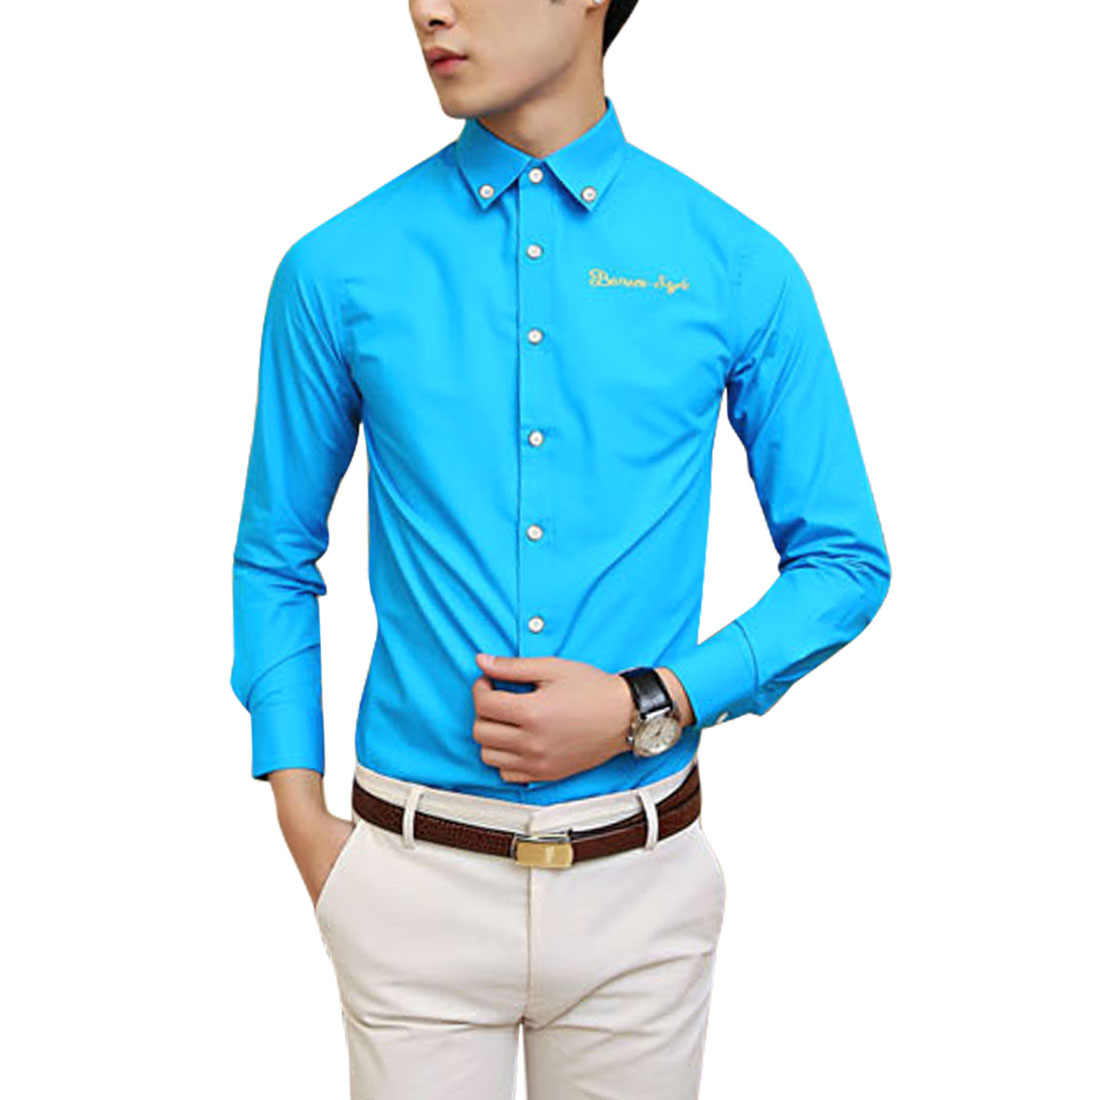 Azzuro Men's Button Cuffs Embroidery Letters Detail Casual Shirt Blue (Size M / 40��